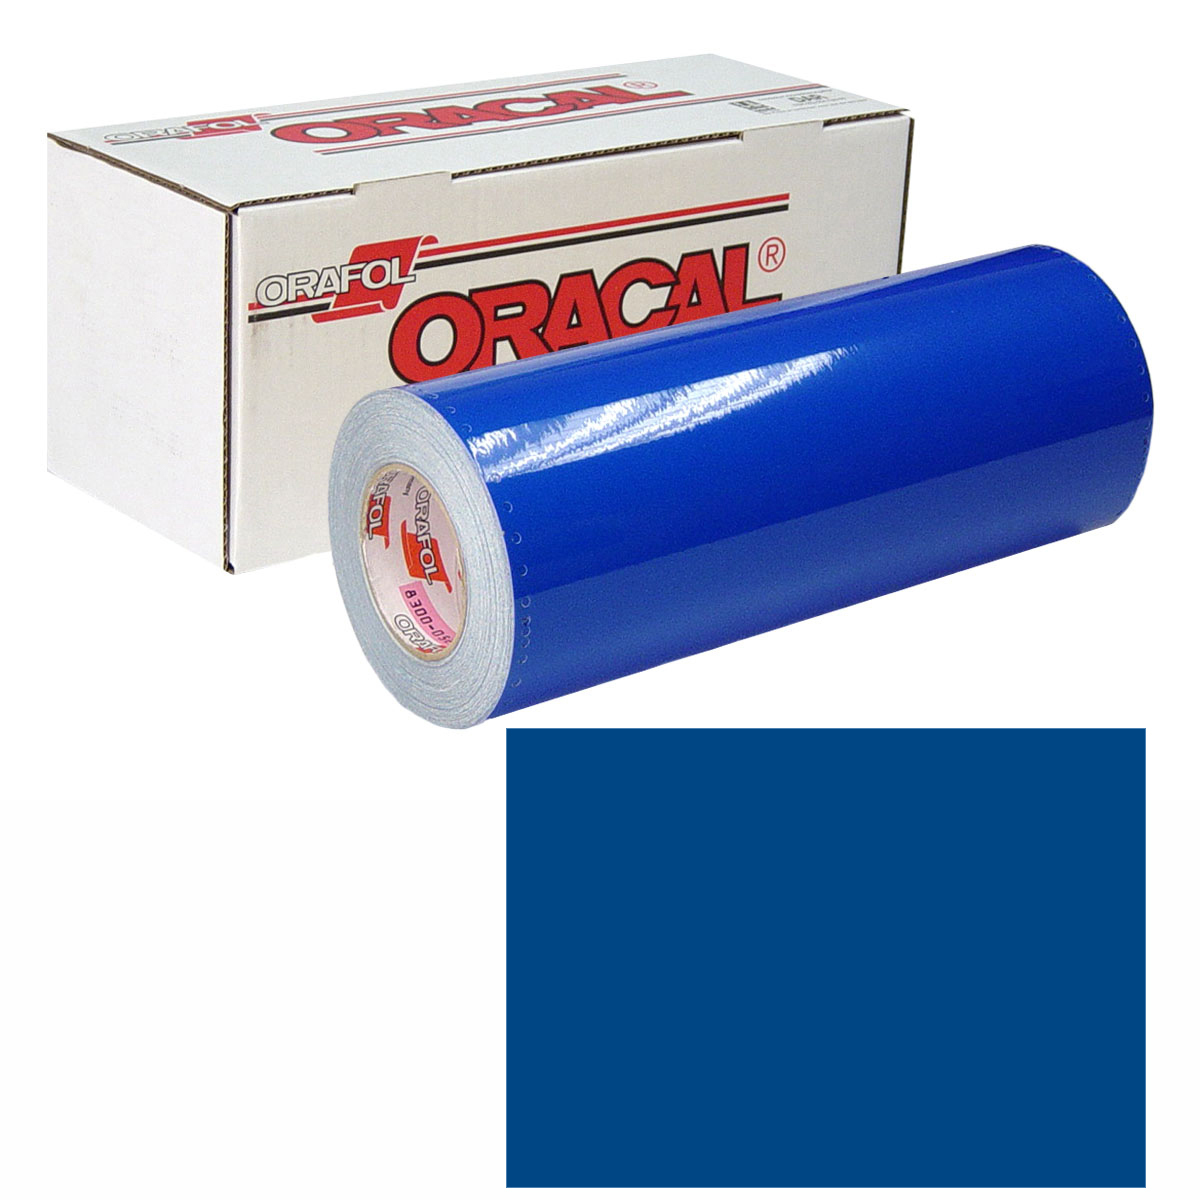 ORACAL 631 Unp 48in X 50yd 051 Gentian Blue